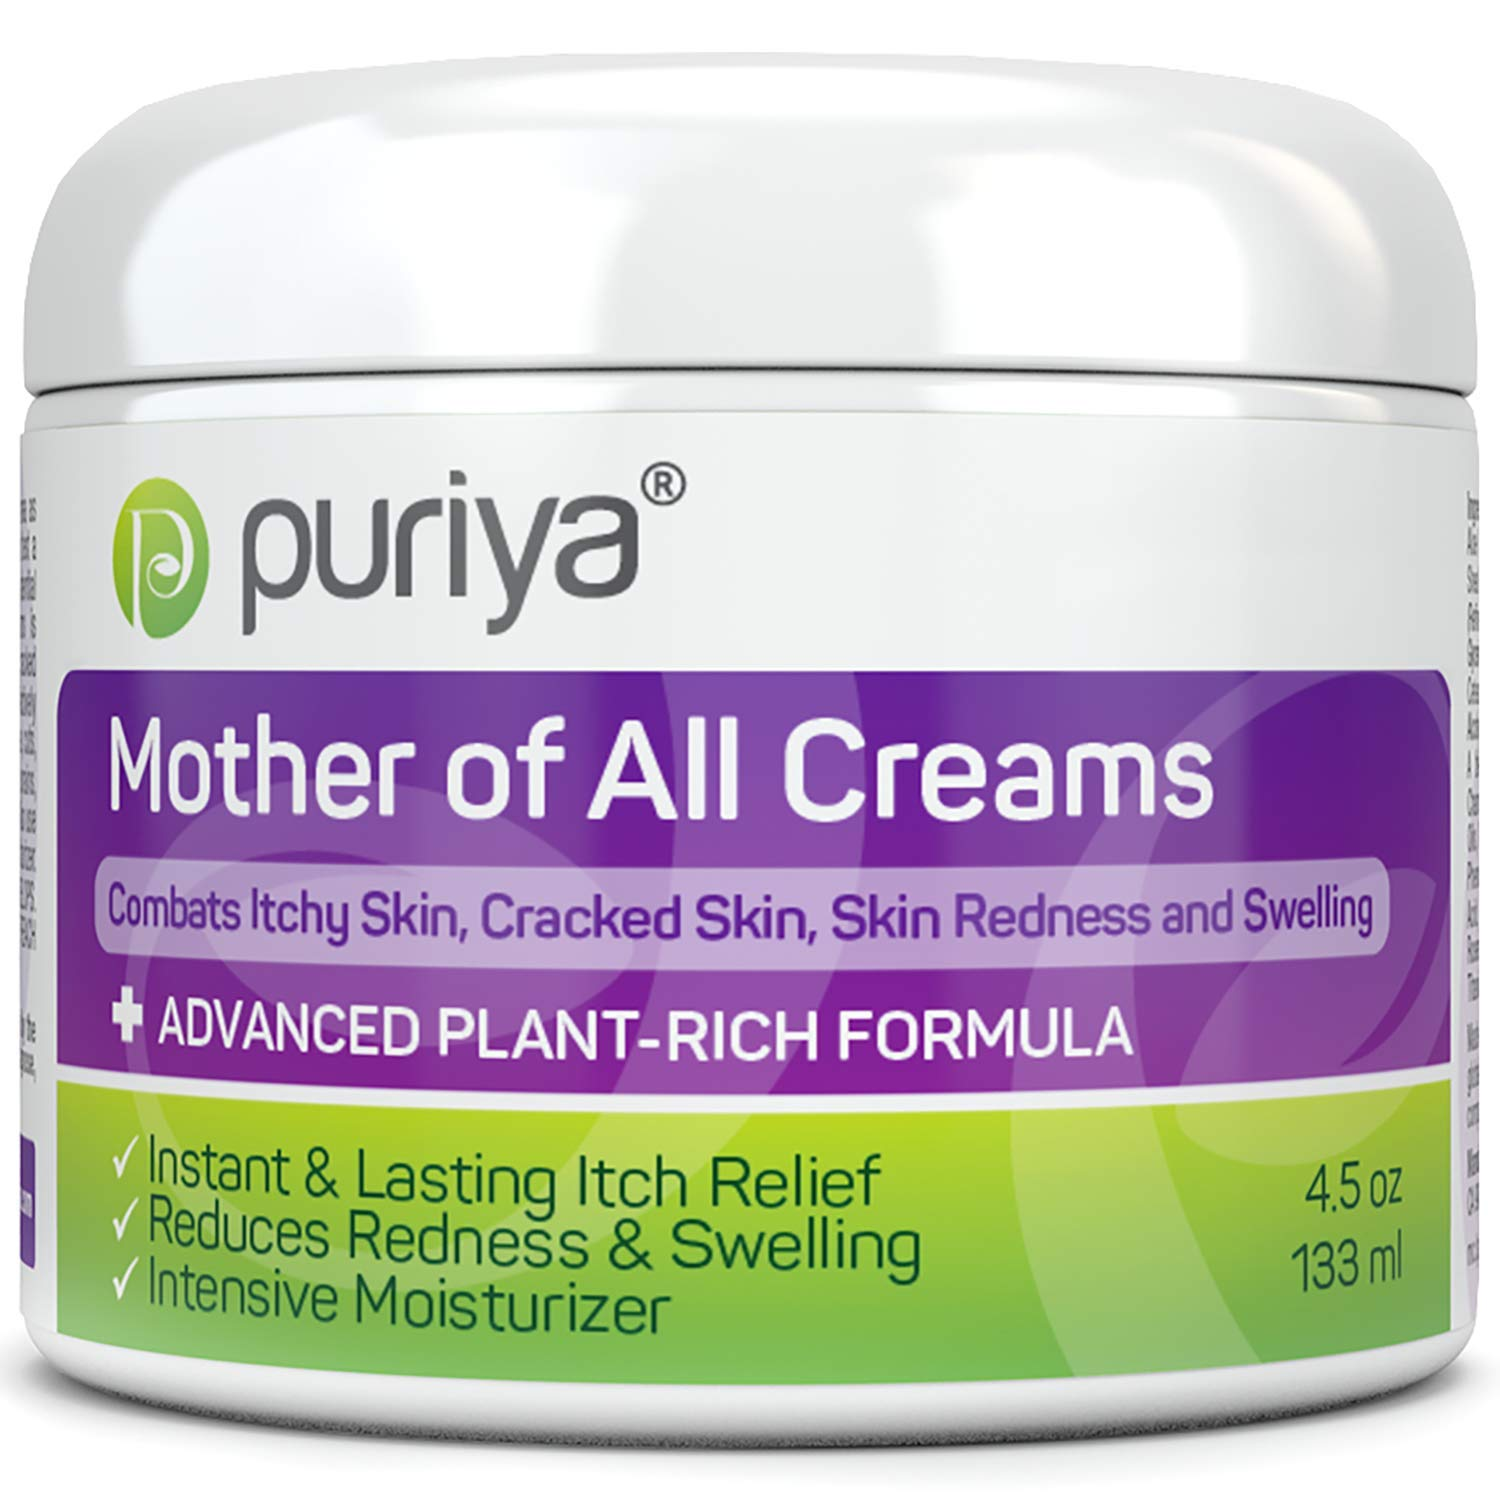 Puriya Cream For Eczema Psoriasis Dermatitis And Rashes Powerful